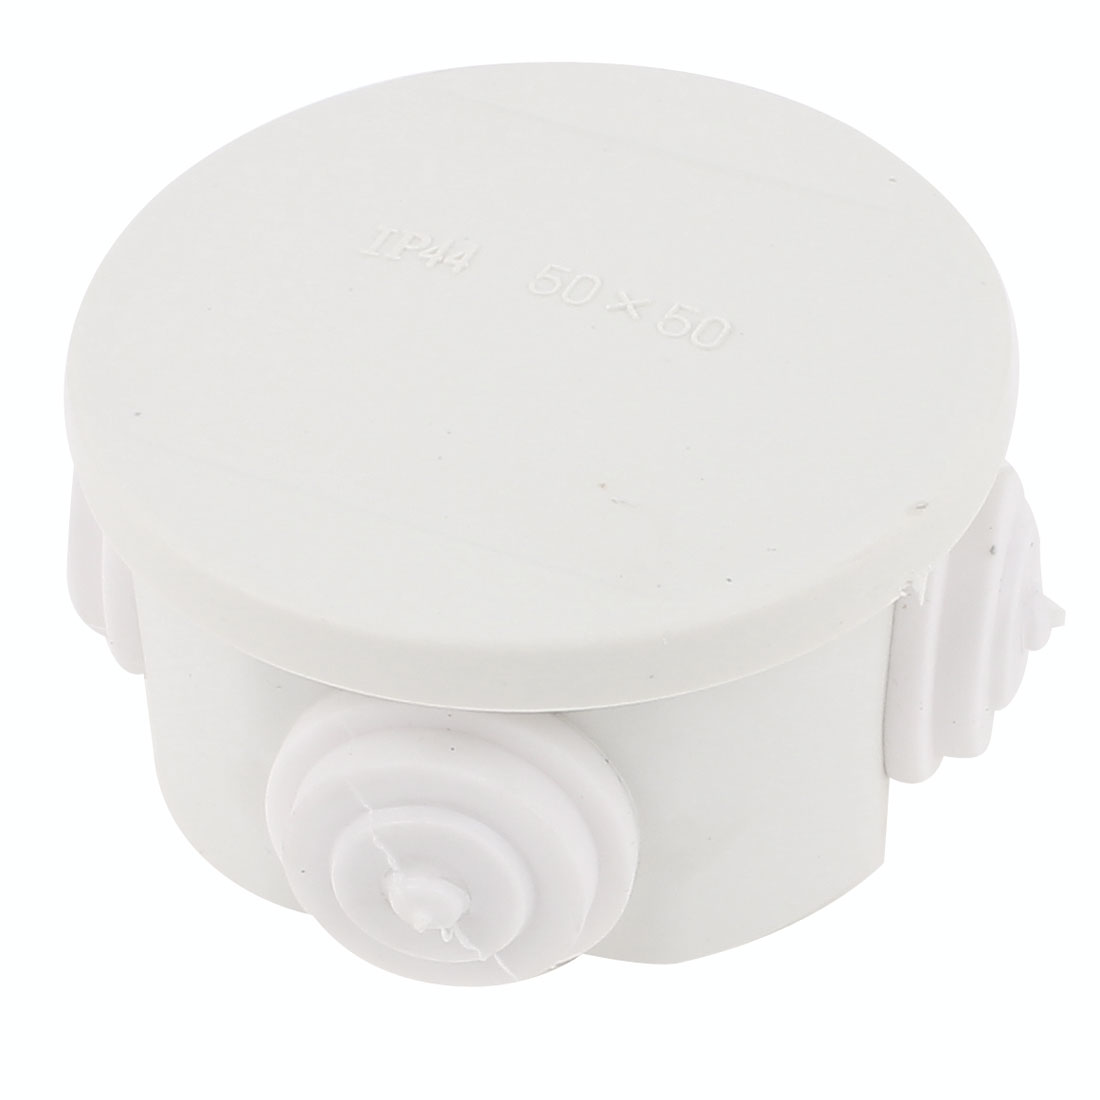 White ABS 4 Cable Entries Dustproof IP44 Enclosure Round Junction Box 50 x 50mm